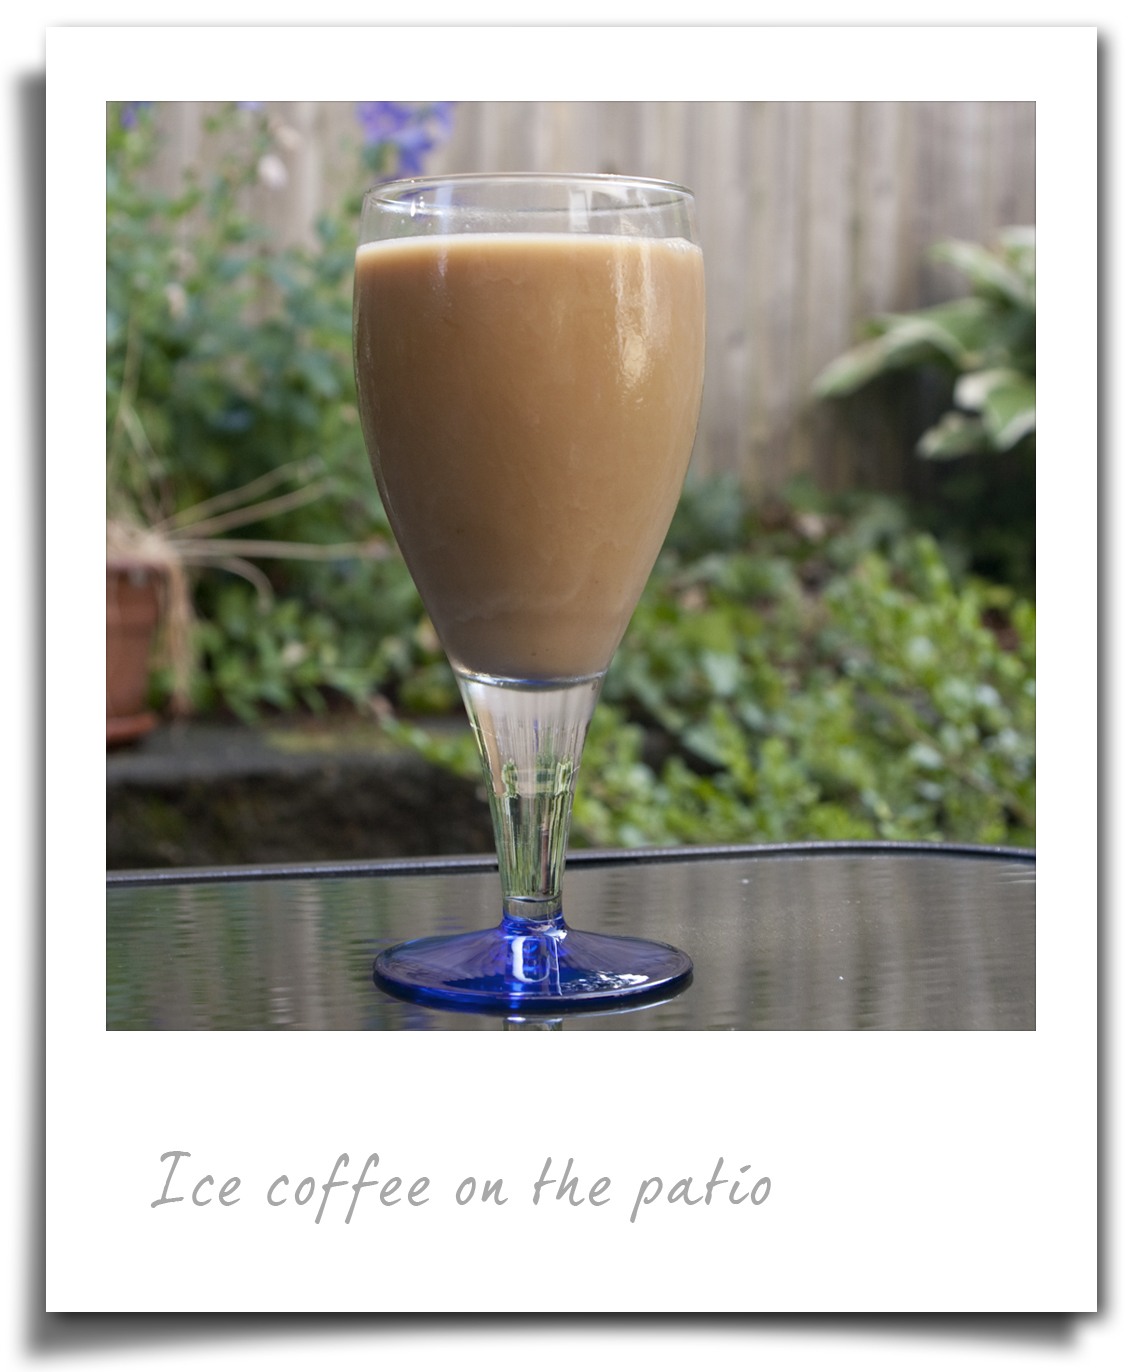 Homemade Iced Coffee Using Espresso Coffee Beans